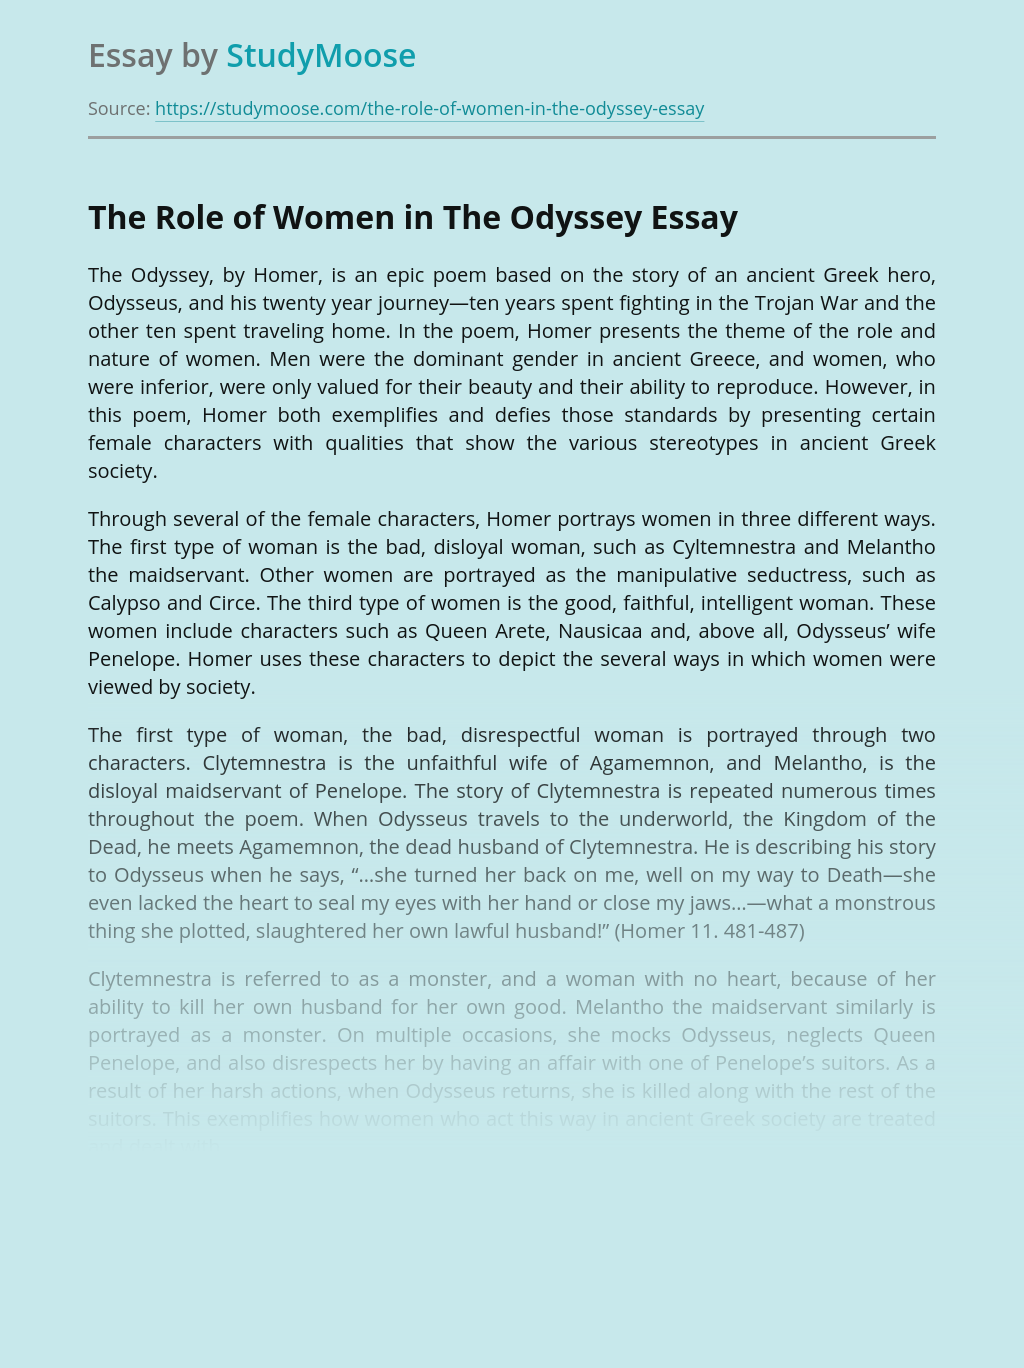 The Role of Women in The Odyssey